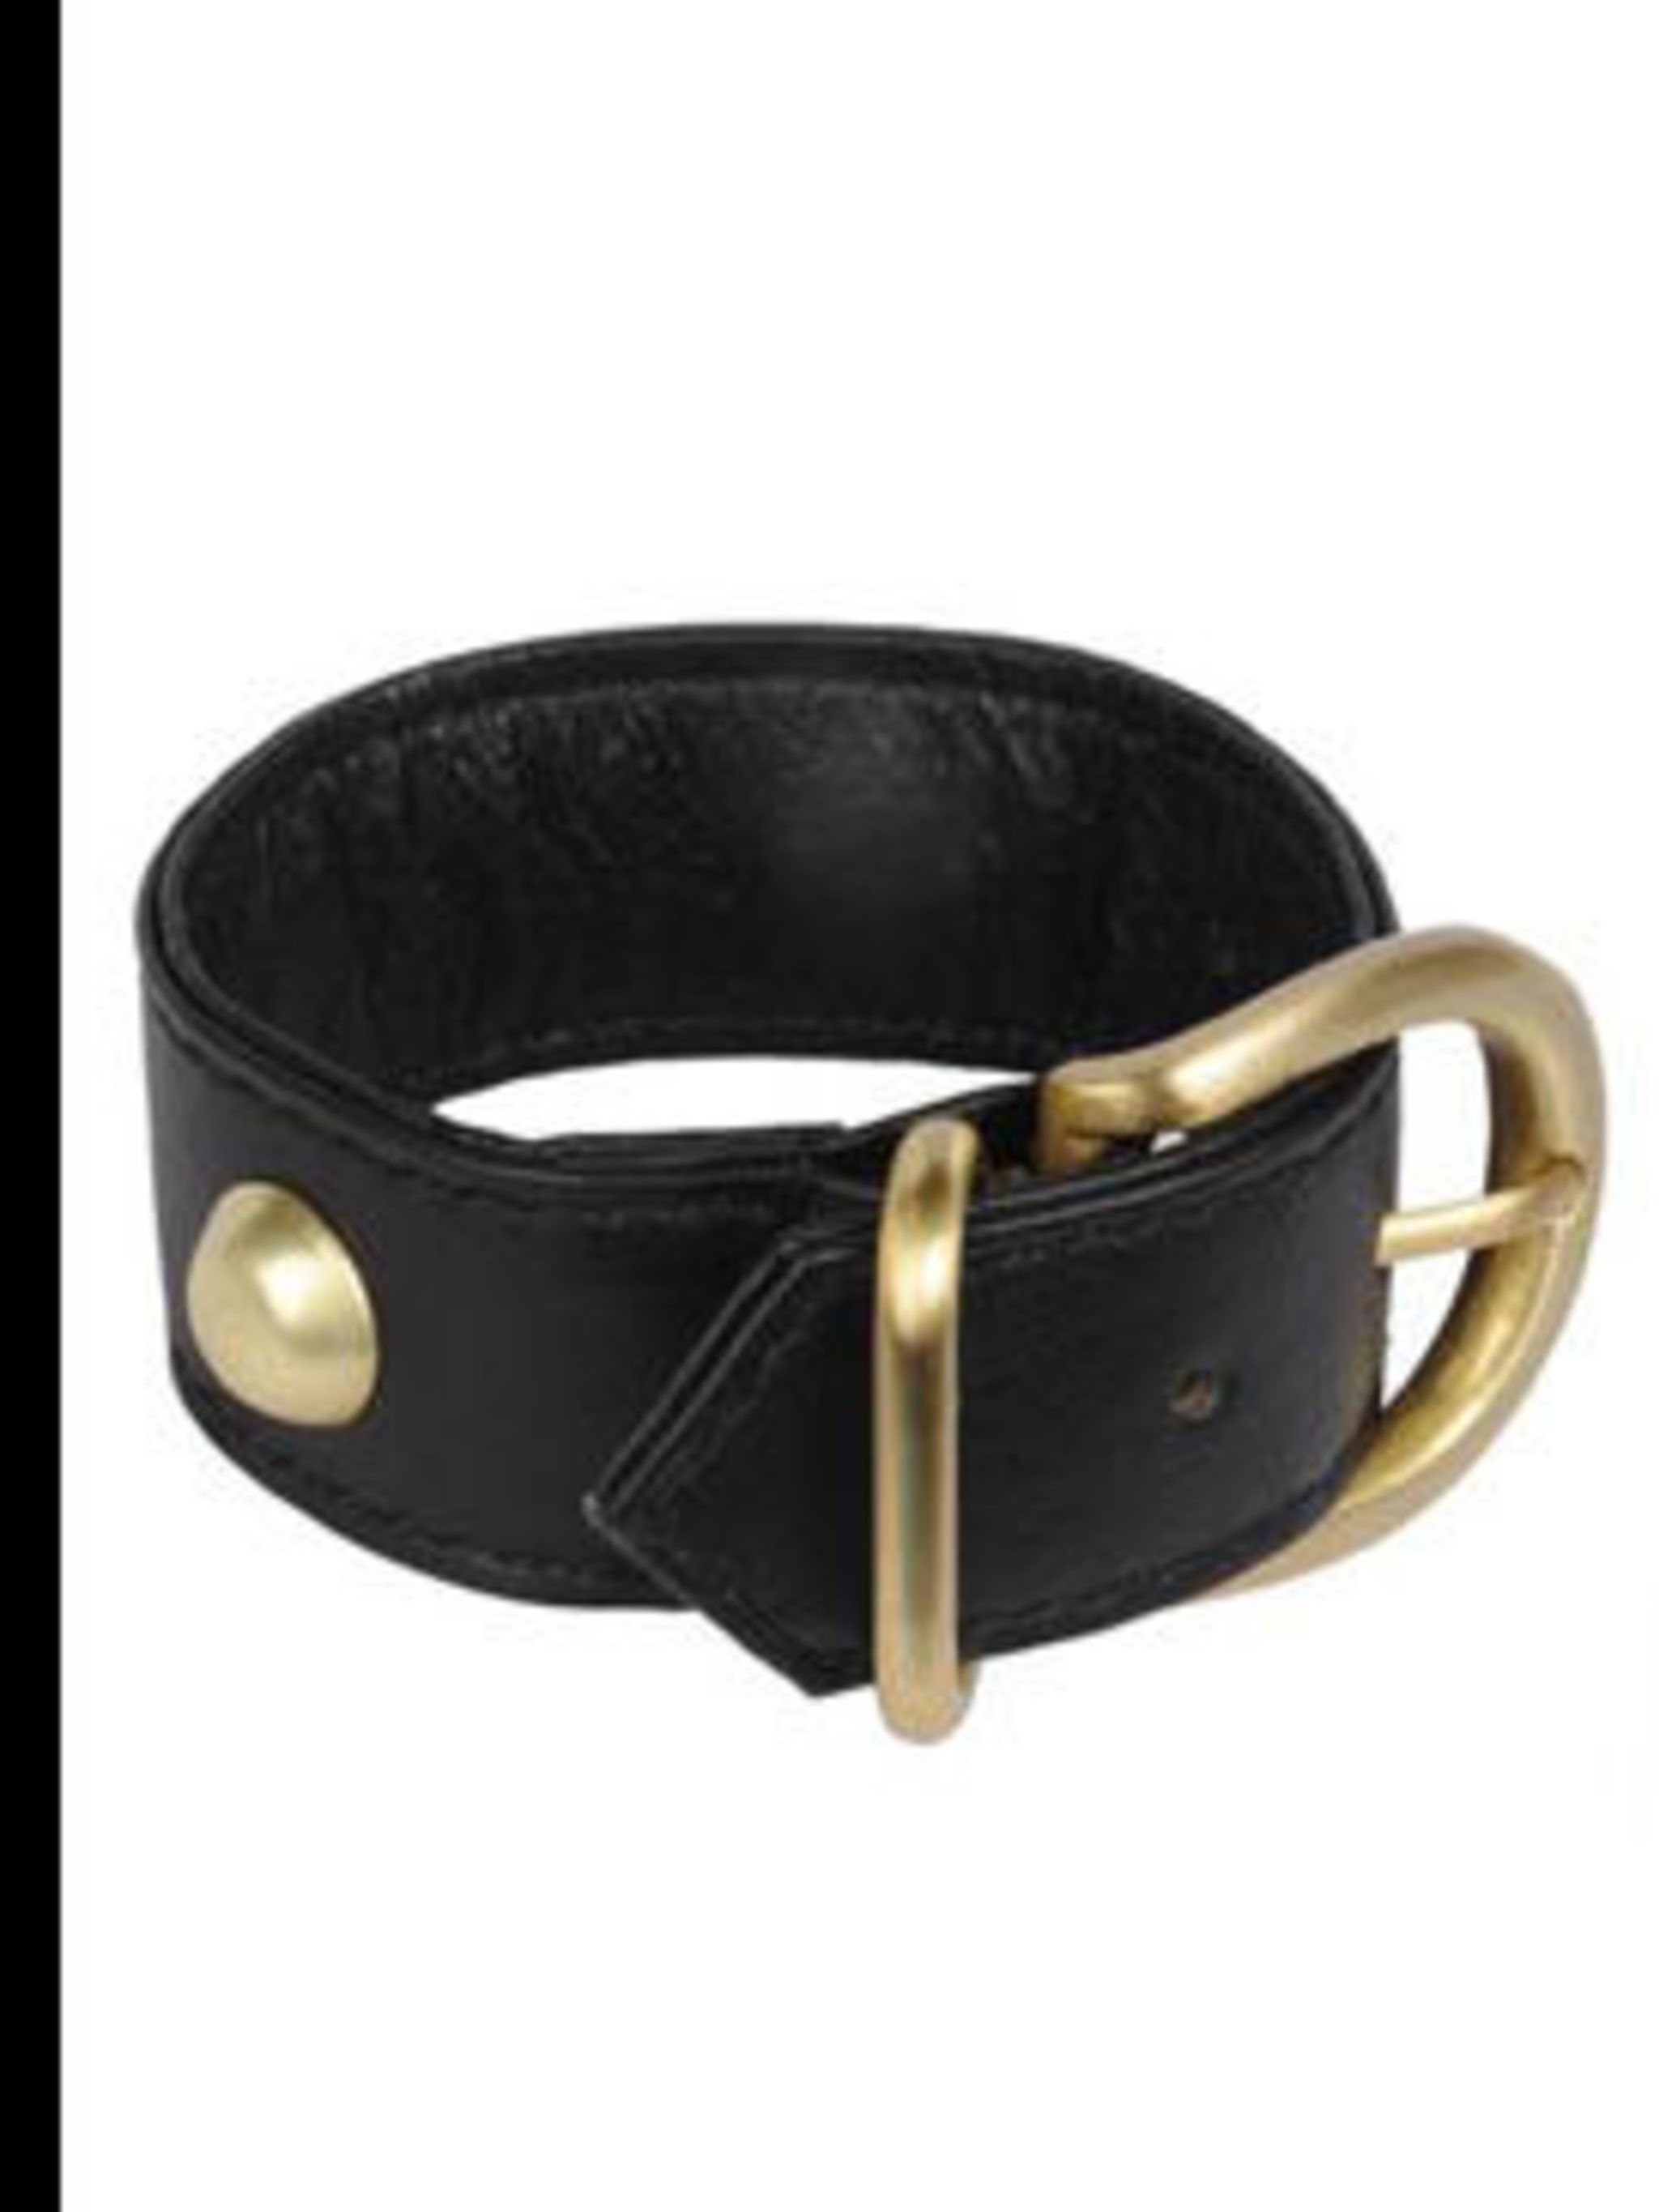 "<p>Leather Cuff, £12.50 by Leonie Saliba at <a href=""http://www.pretaportobello.com/Onlineproductdetail.aspx?PId=dd5deb04-351a-4ea3-91e4-e587f19af895"">Pret A Portobello</a></p>"